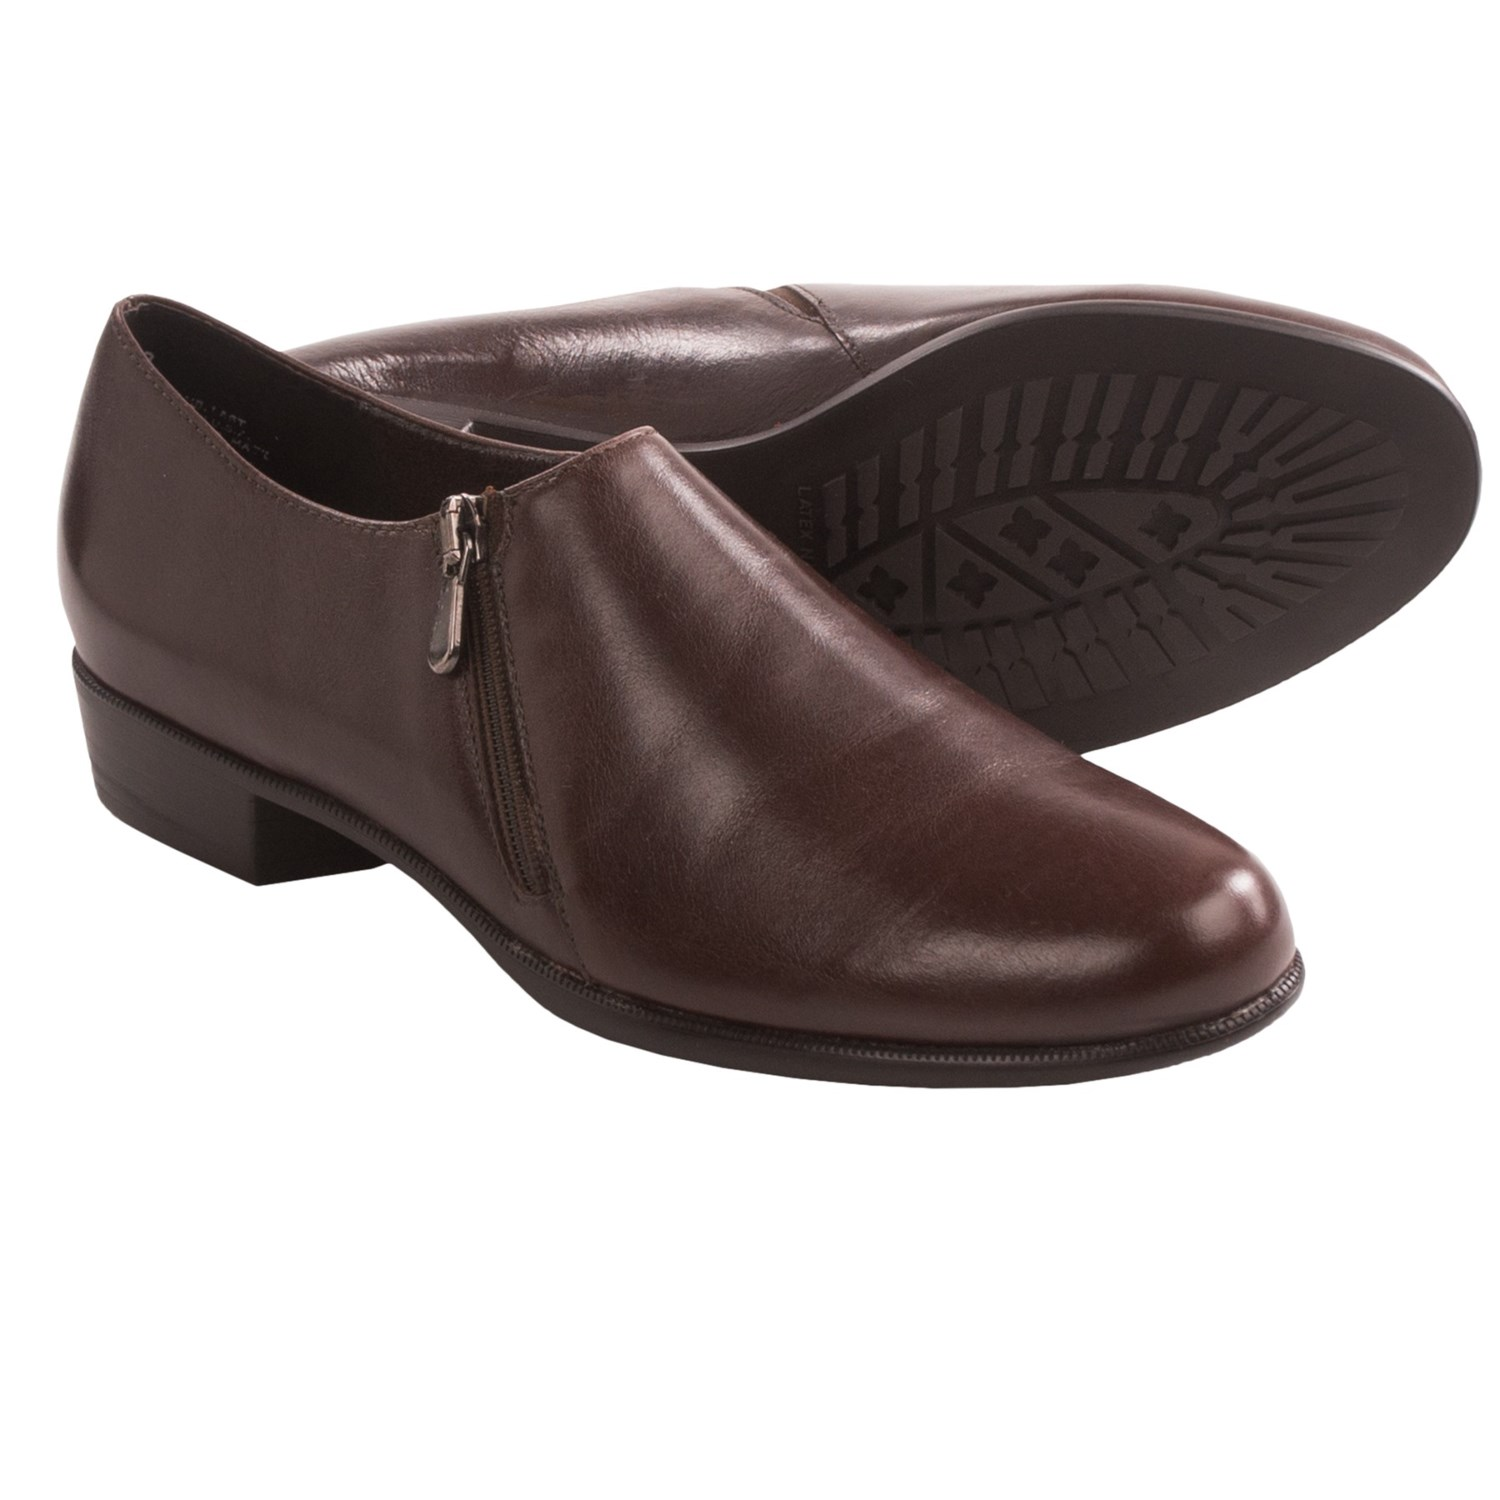 Customer Reviews of Munro American Derby Slip-On Shoes (For Women